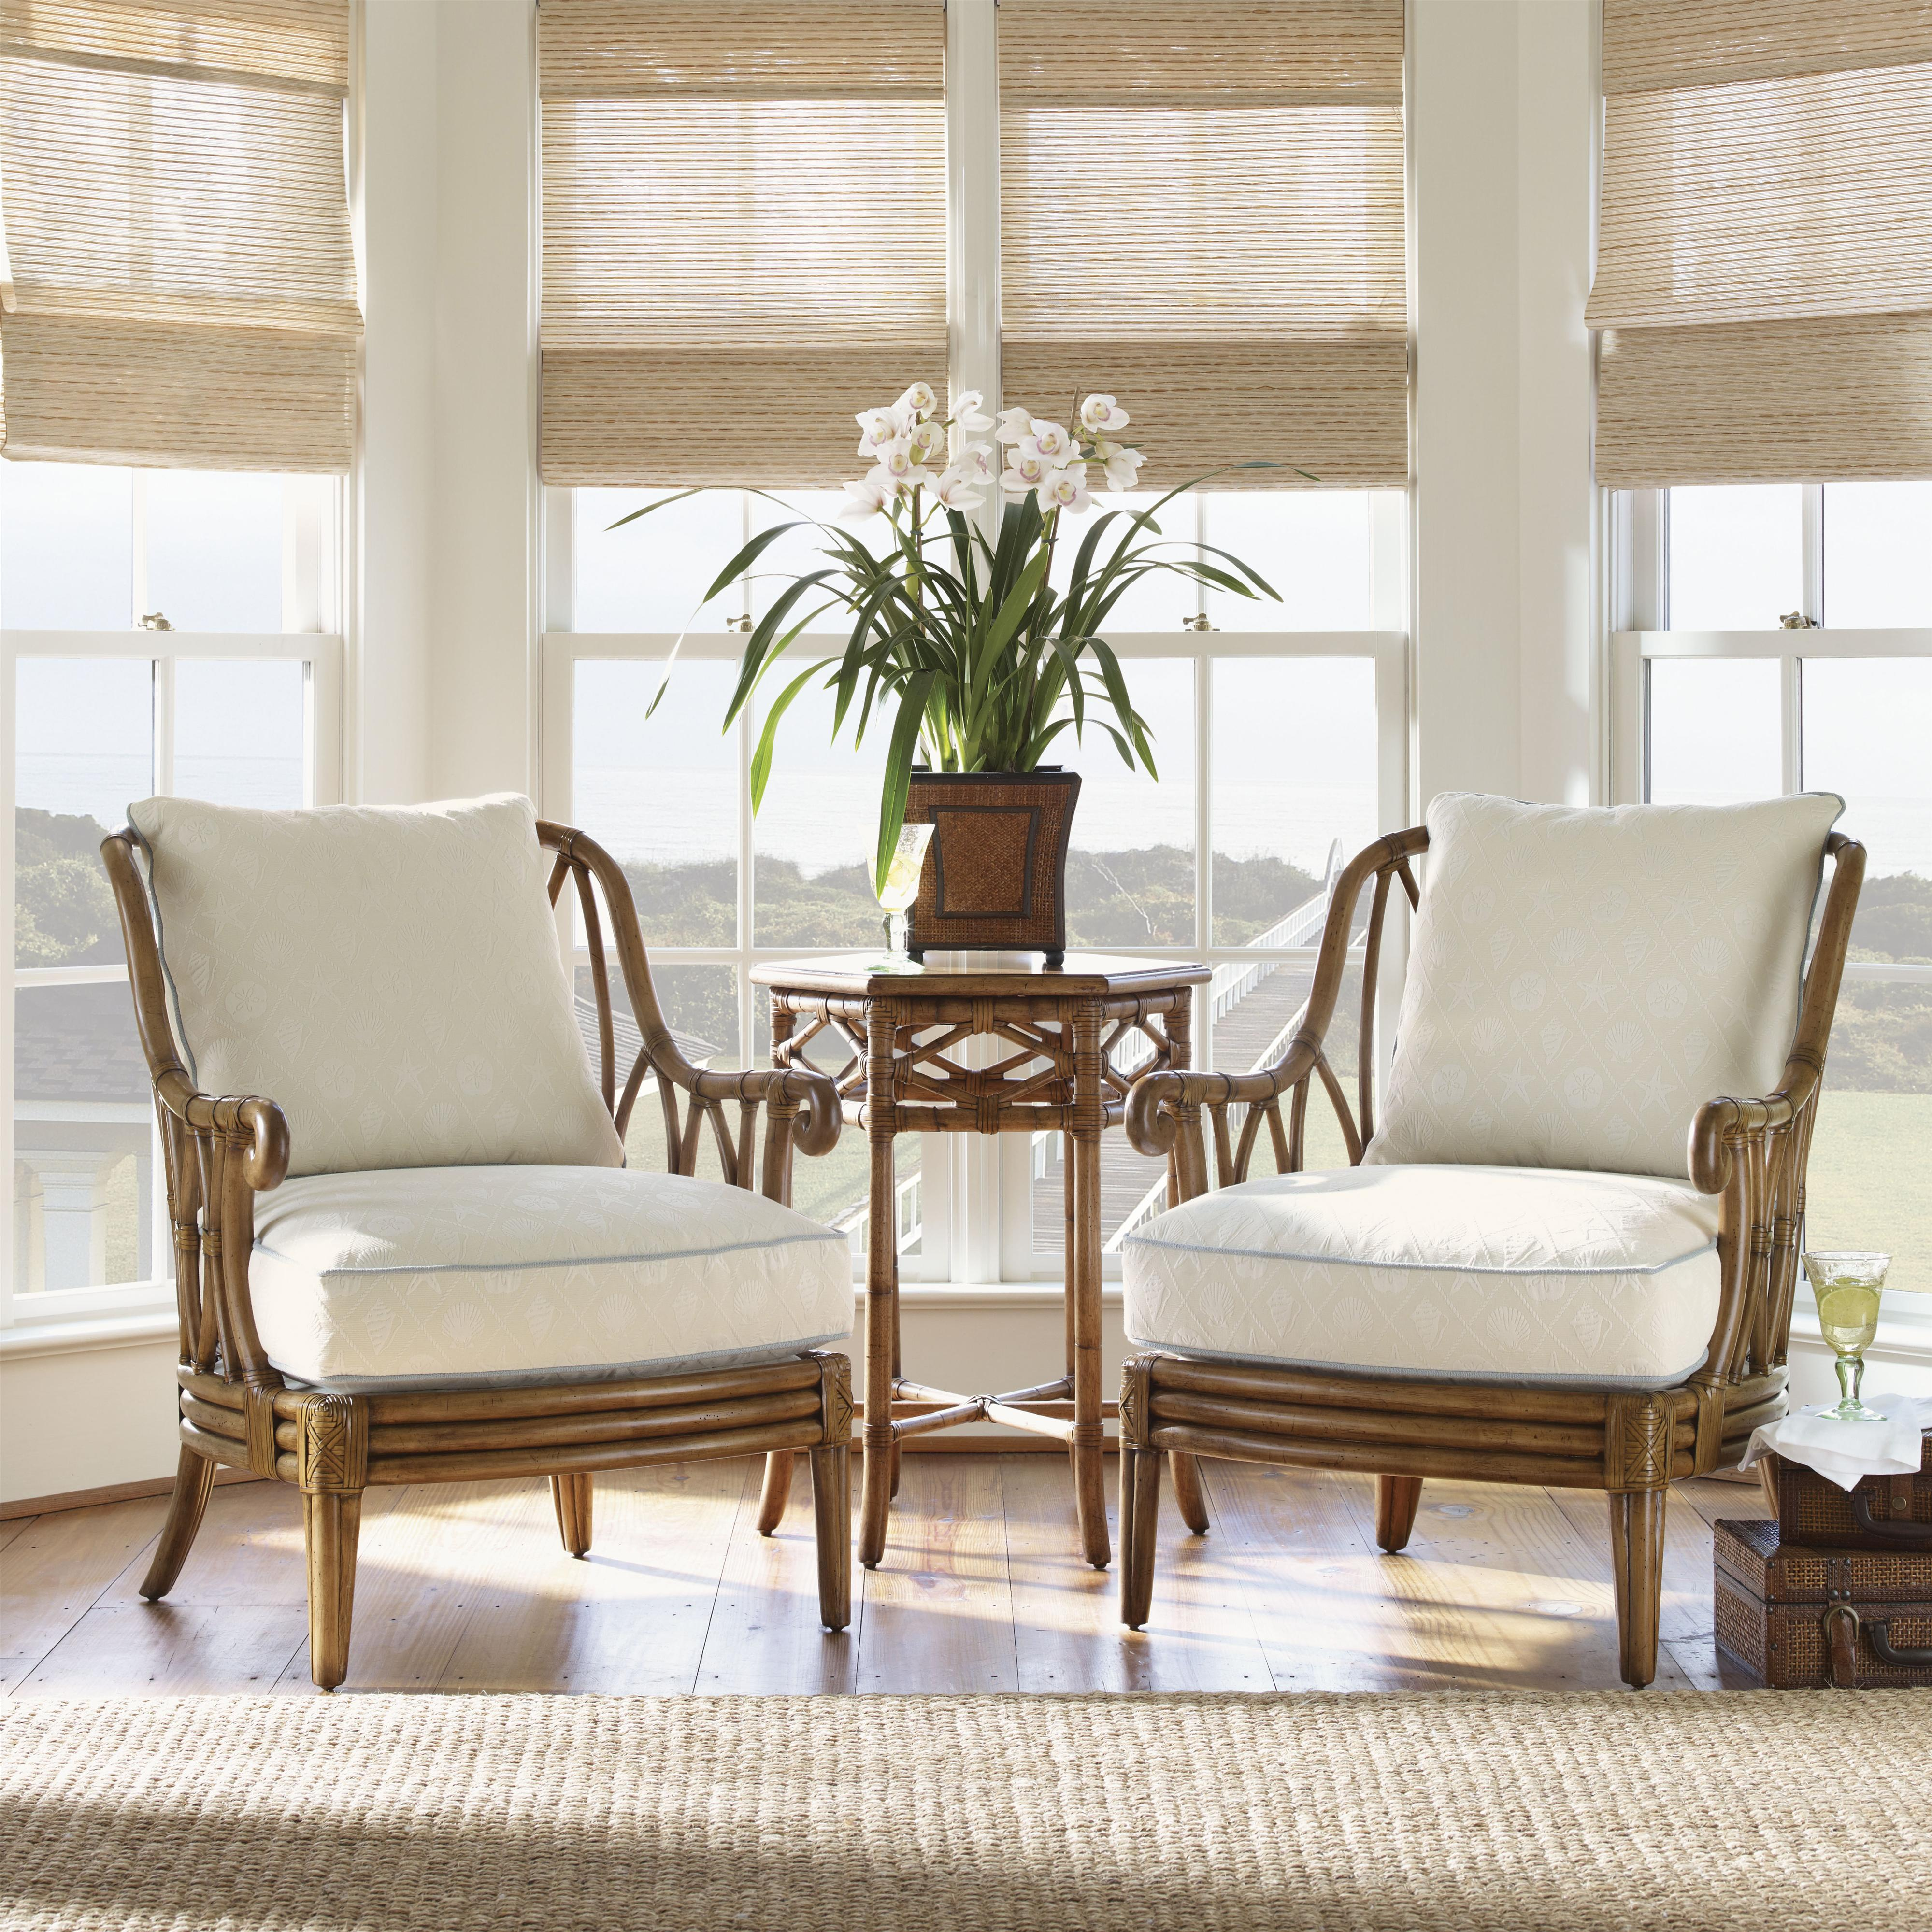 Pleasing Beach House 540 By Tommy Bahama Home Baers Furniture Tommy Largest Home Design Picture Inspirations Pitcheantrous